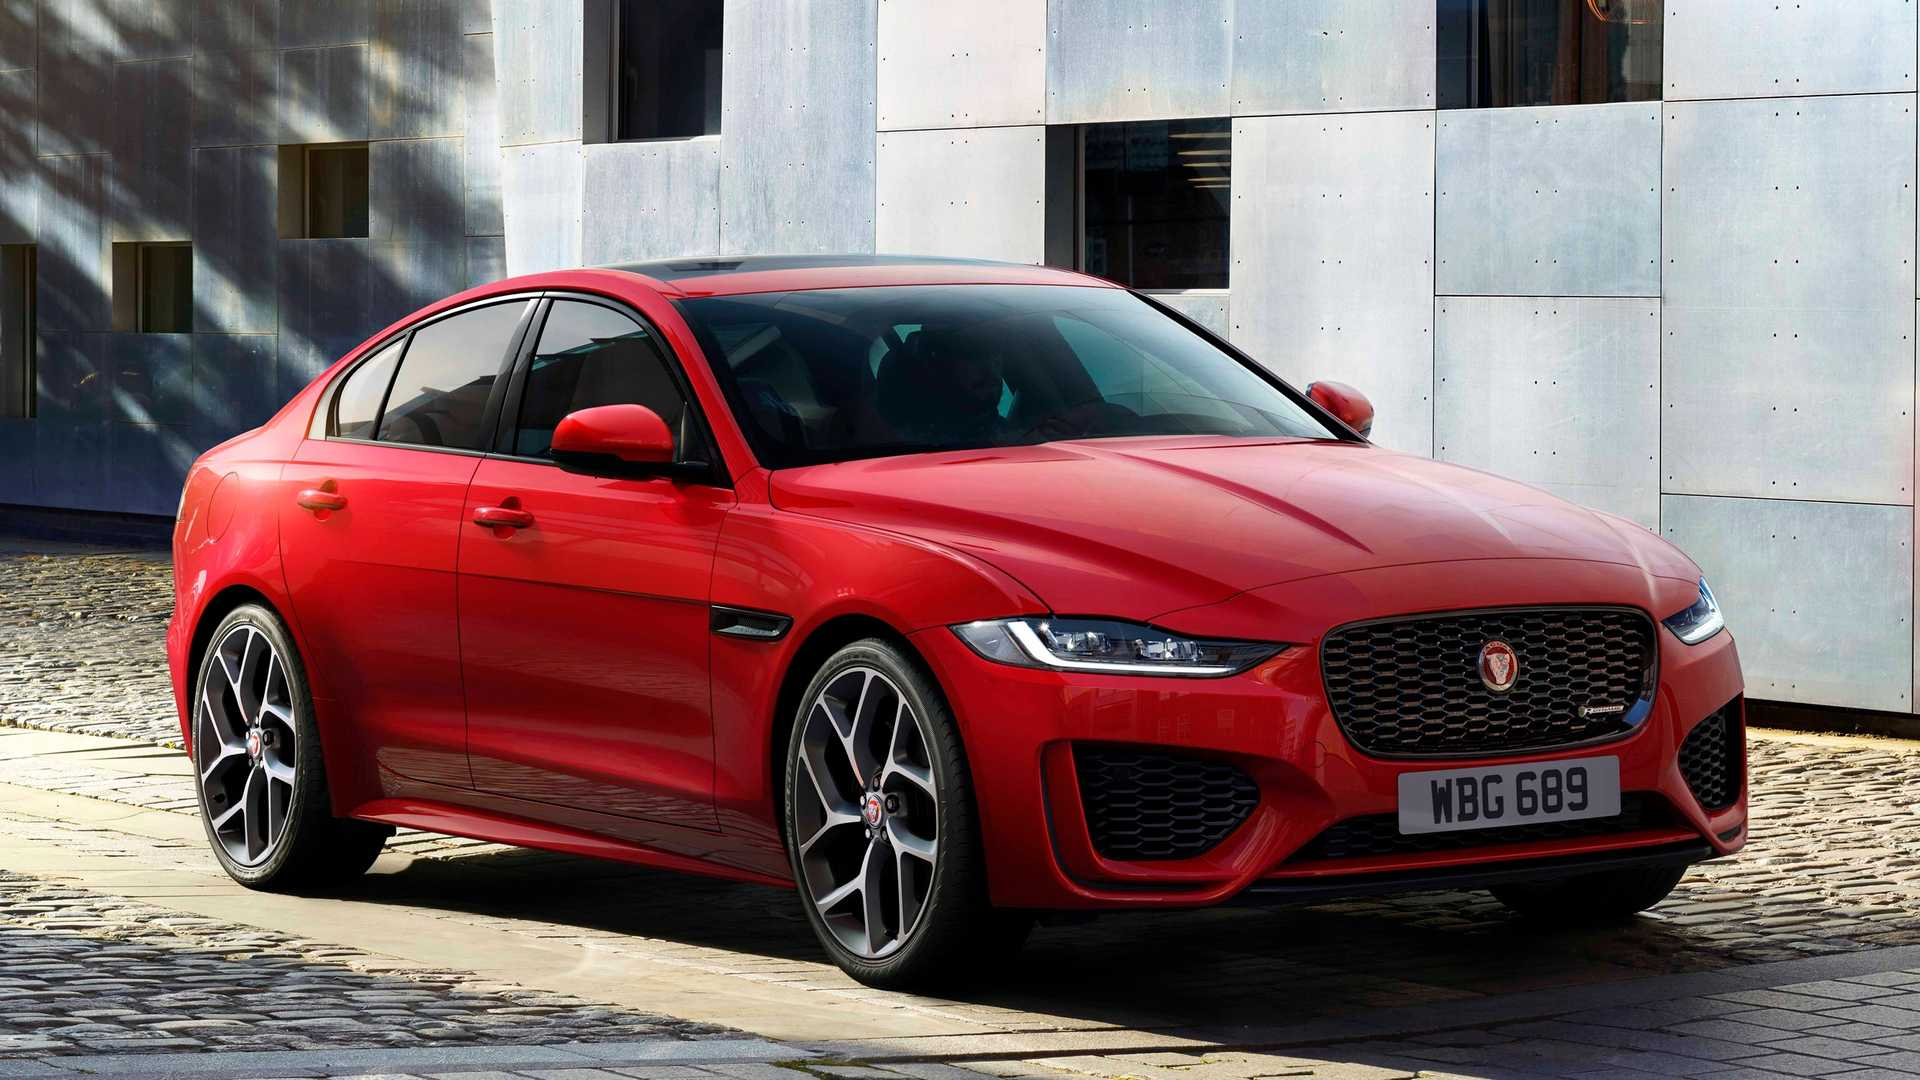 94 Concept of New Jaguar Xe 2020 Interior Release Date for New Jaguar Xe 2020 Interior